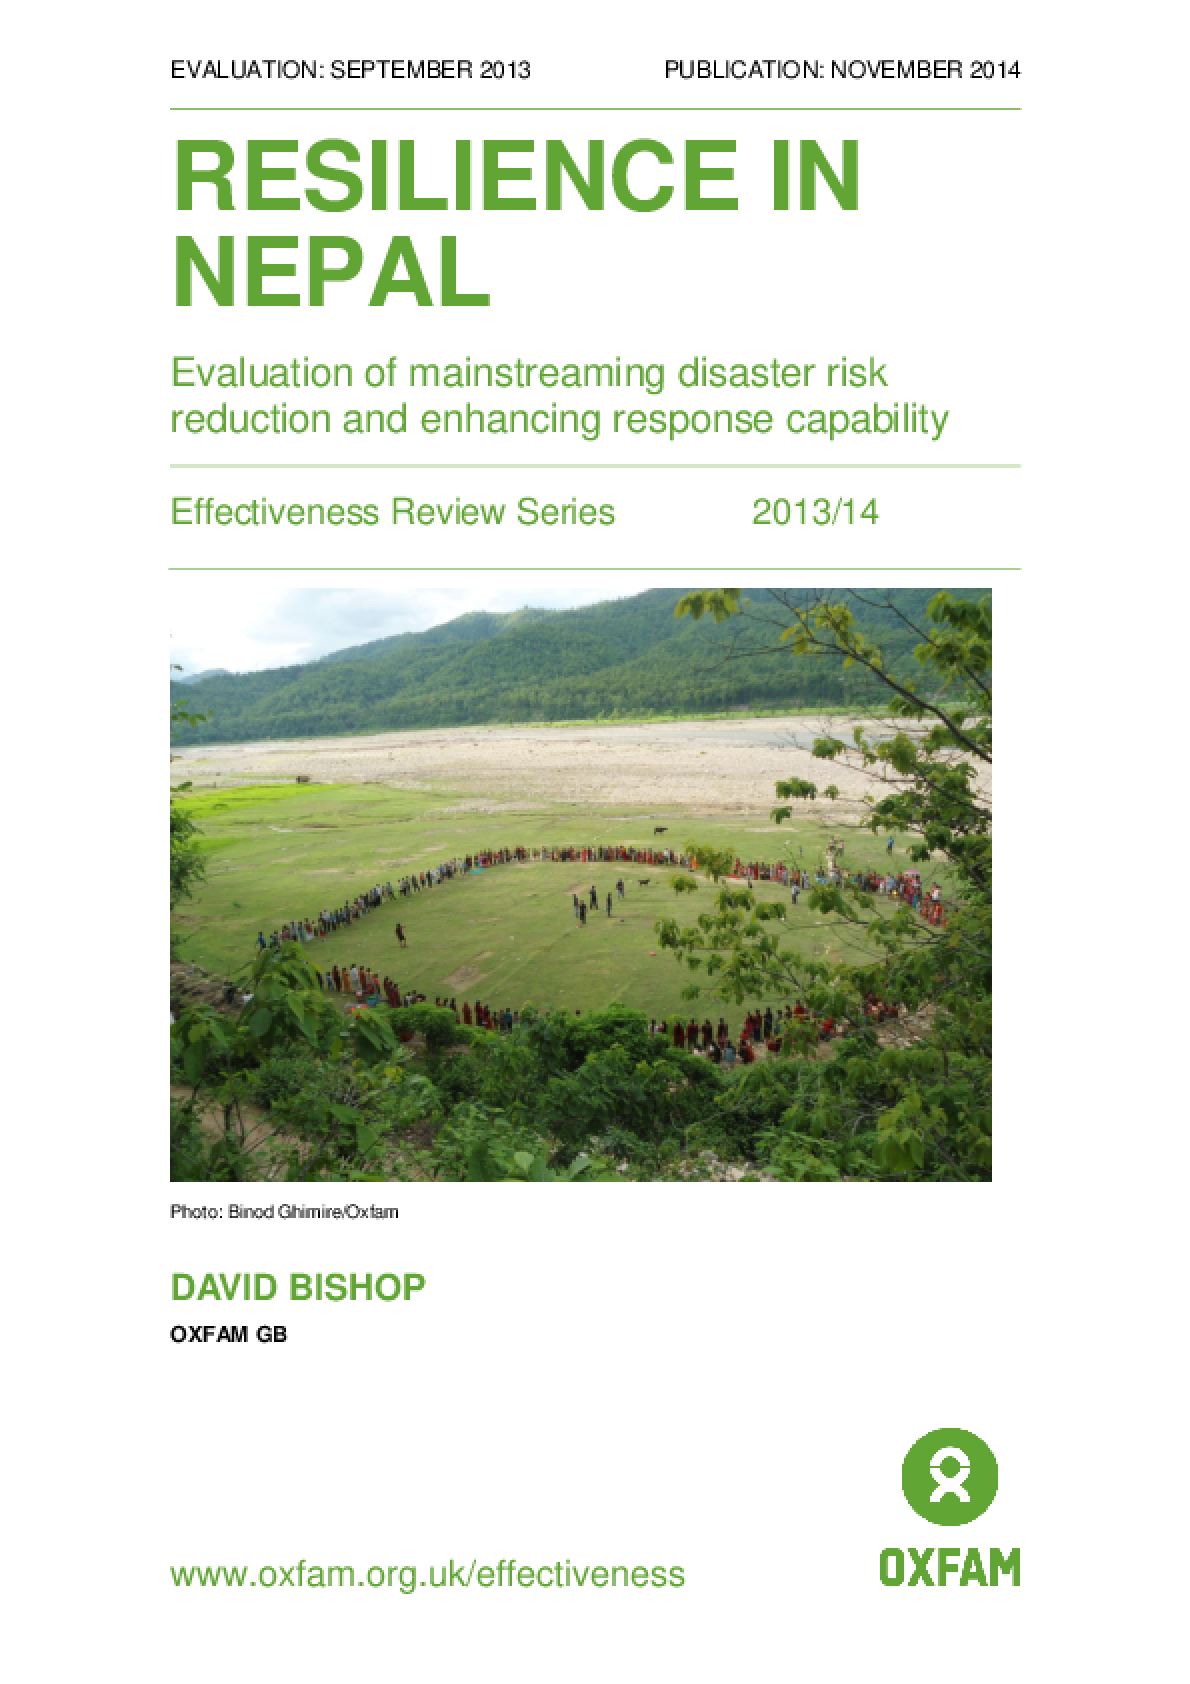 Resilience in Nepal: Evaluation of mainstreaming disaster risk reduction and enhancing response capability